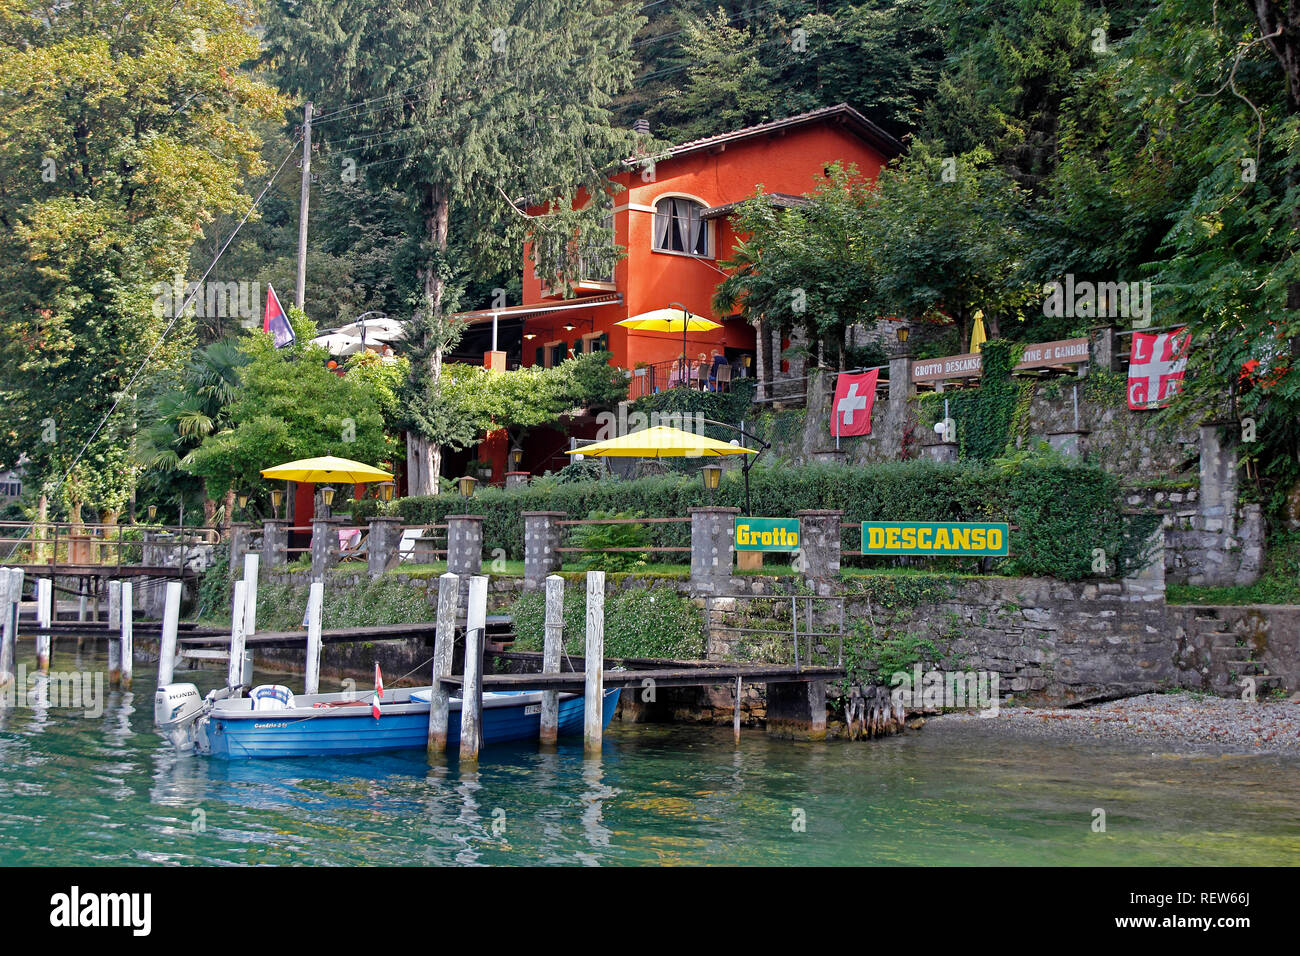 Arte Restaurant Lugano Lake Lugano Cafe Stock Photos Lake Lugano Cafe Stock Images Alamy